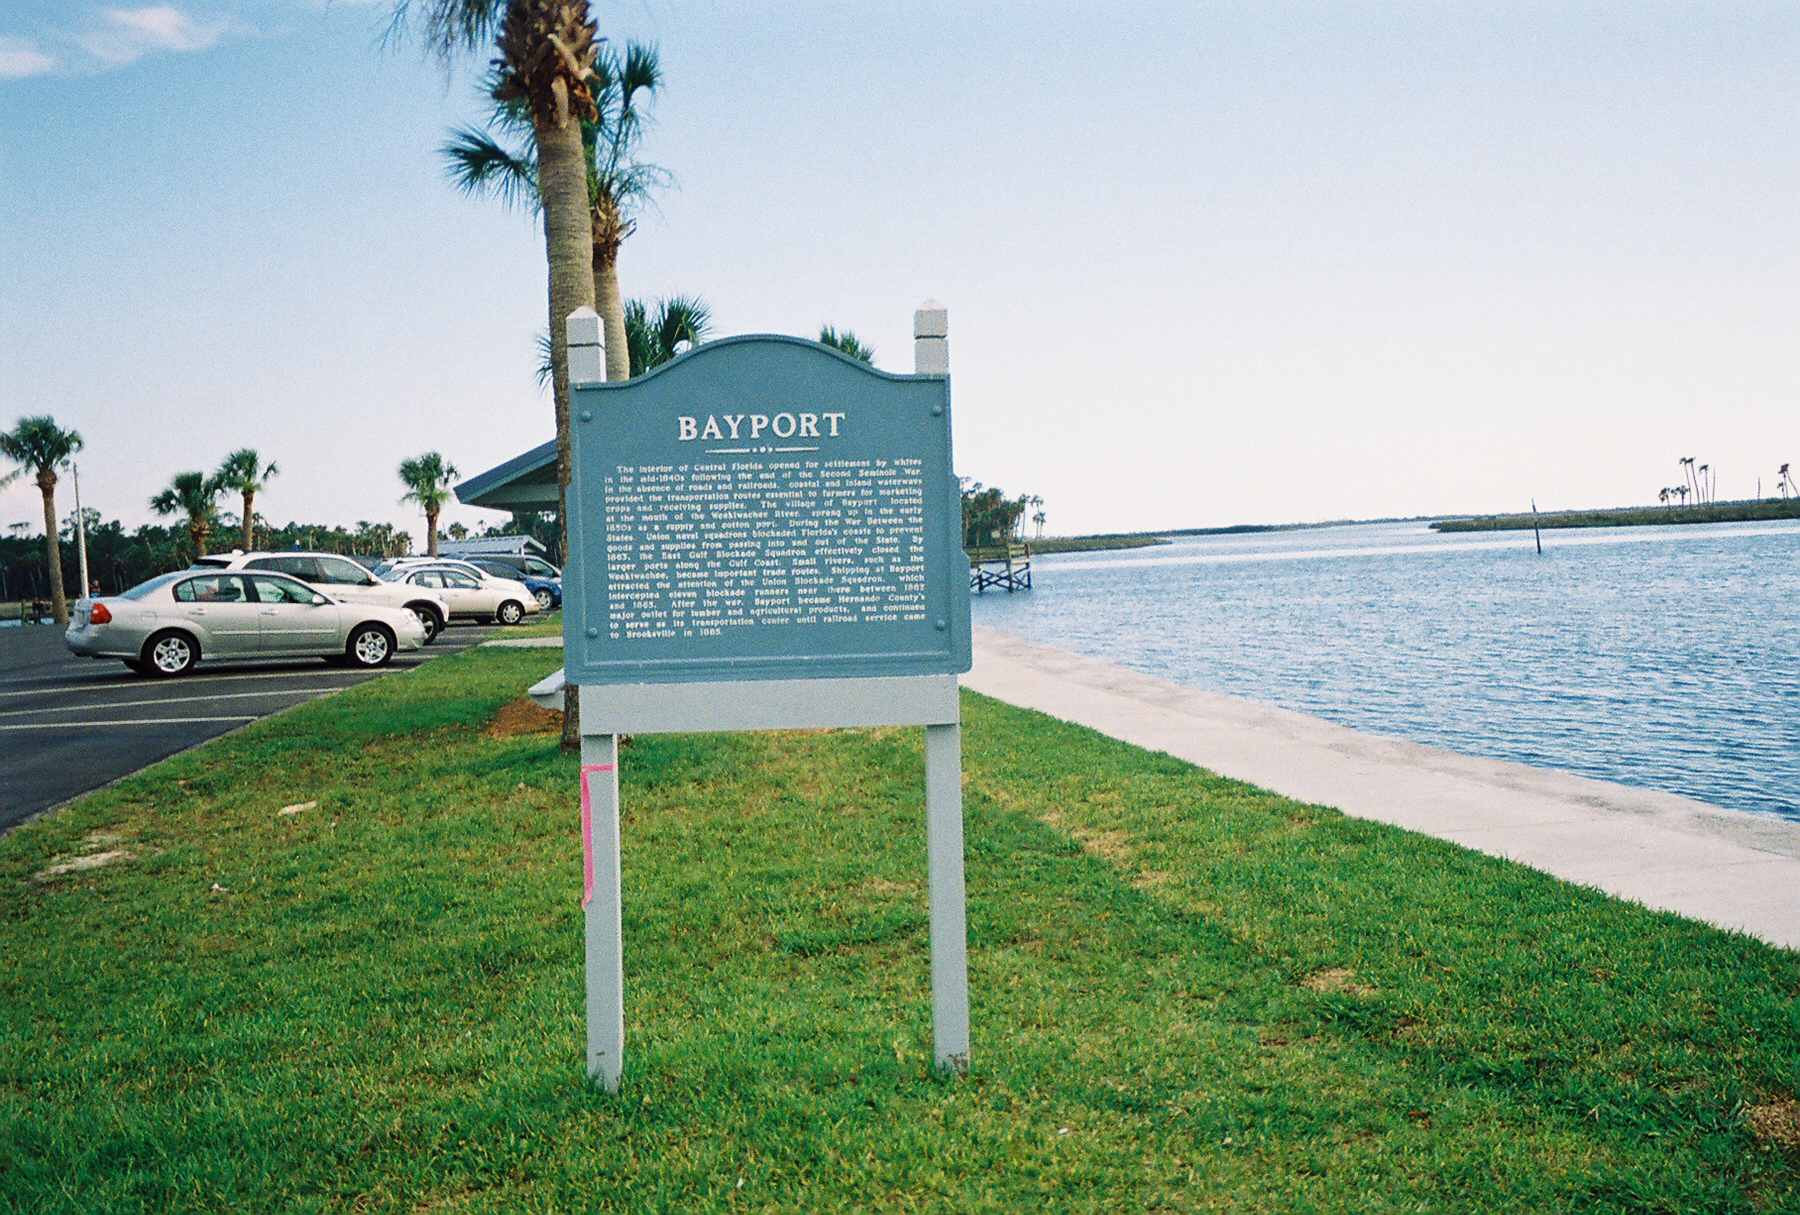 Historic plaque at the end of Hernando County Road 550, Bayport, Florida. Image by DanTD - Own work, CC BY-SA 3.0, https://commons.wikimedia.org/w/index.php?curid=4460682